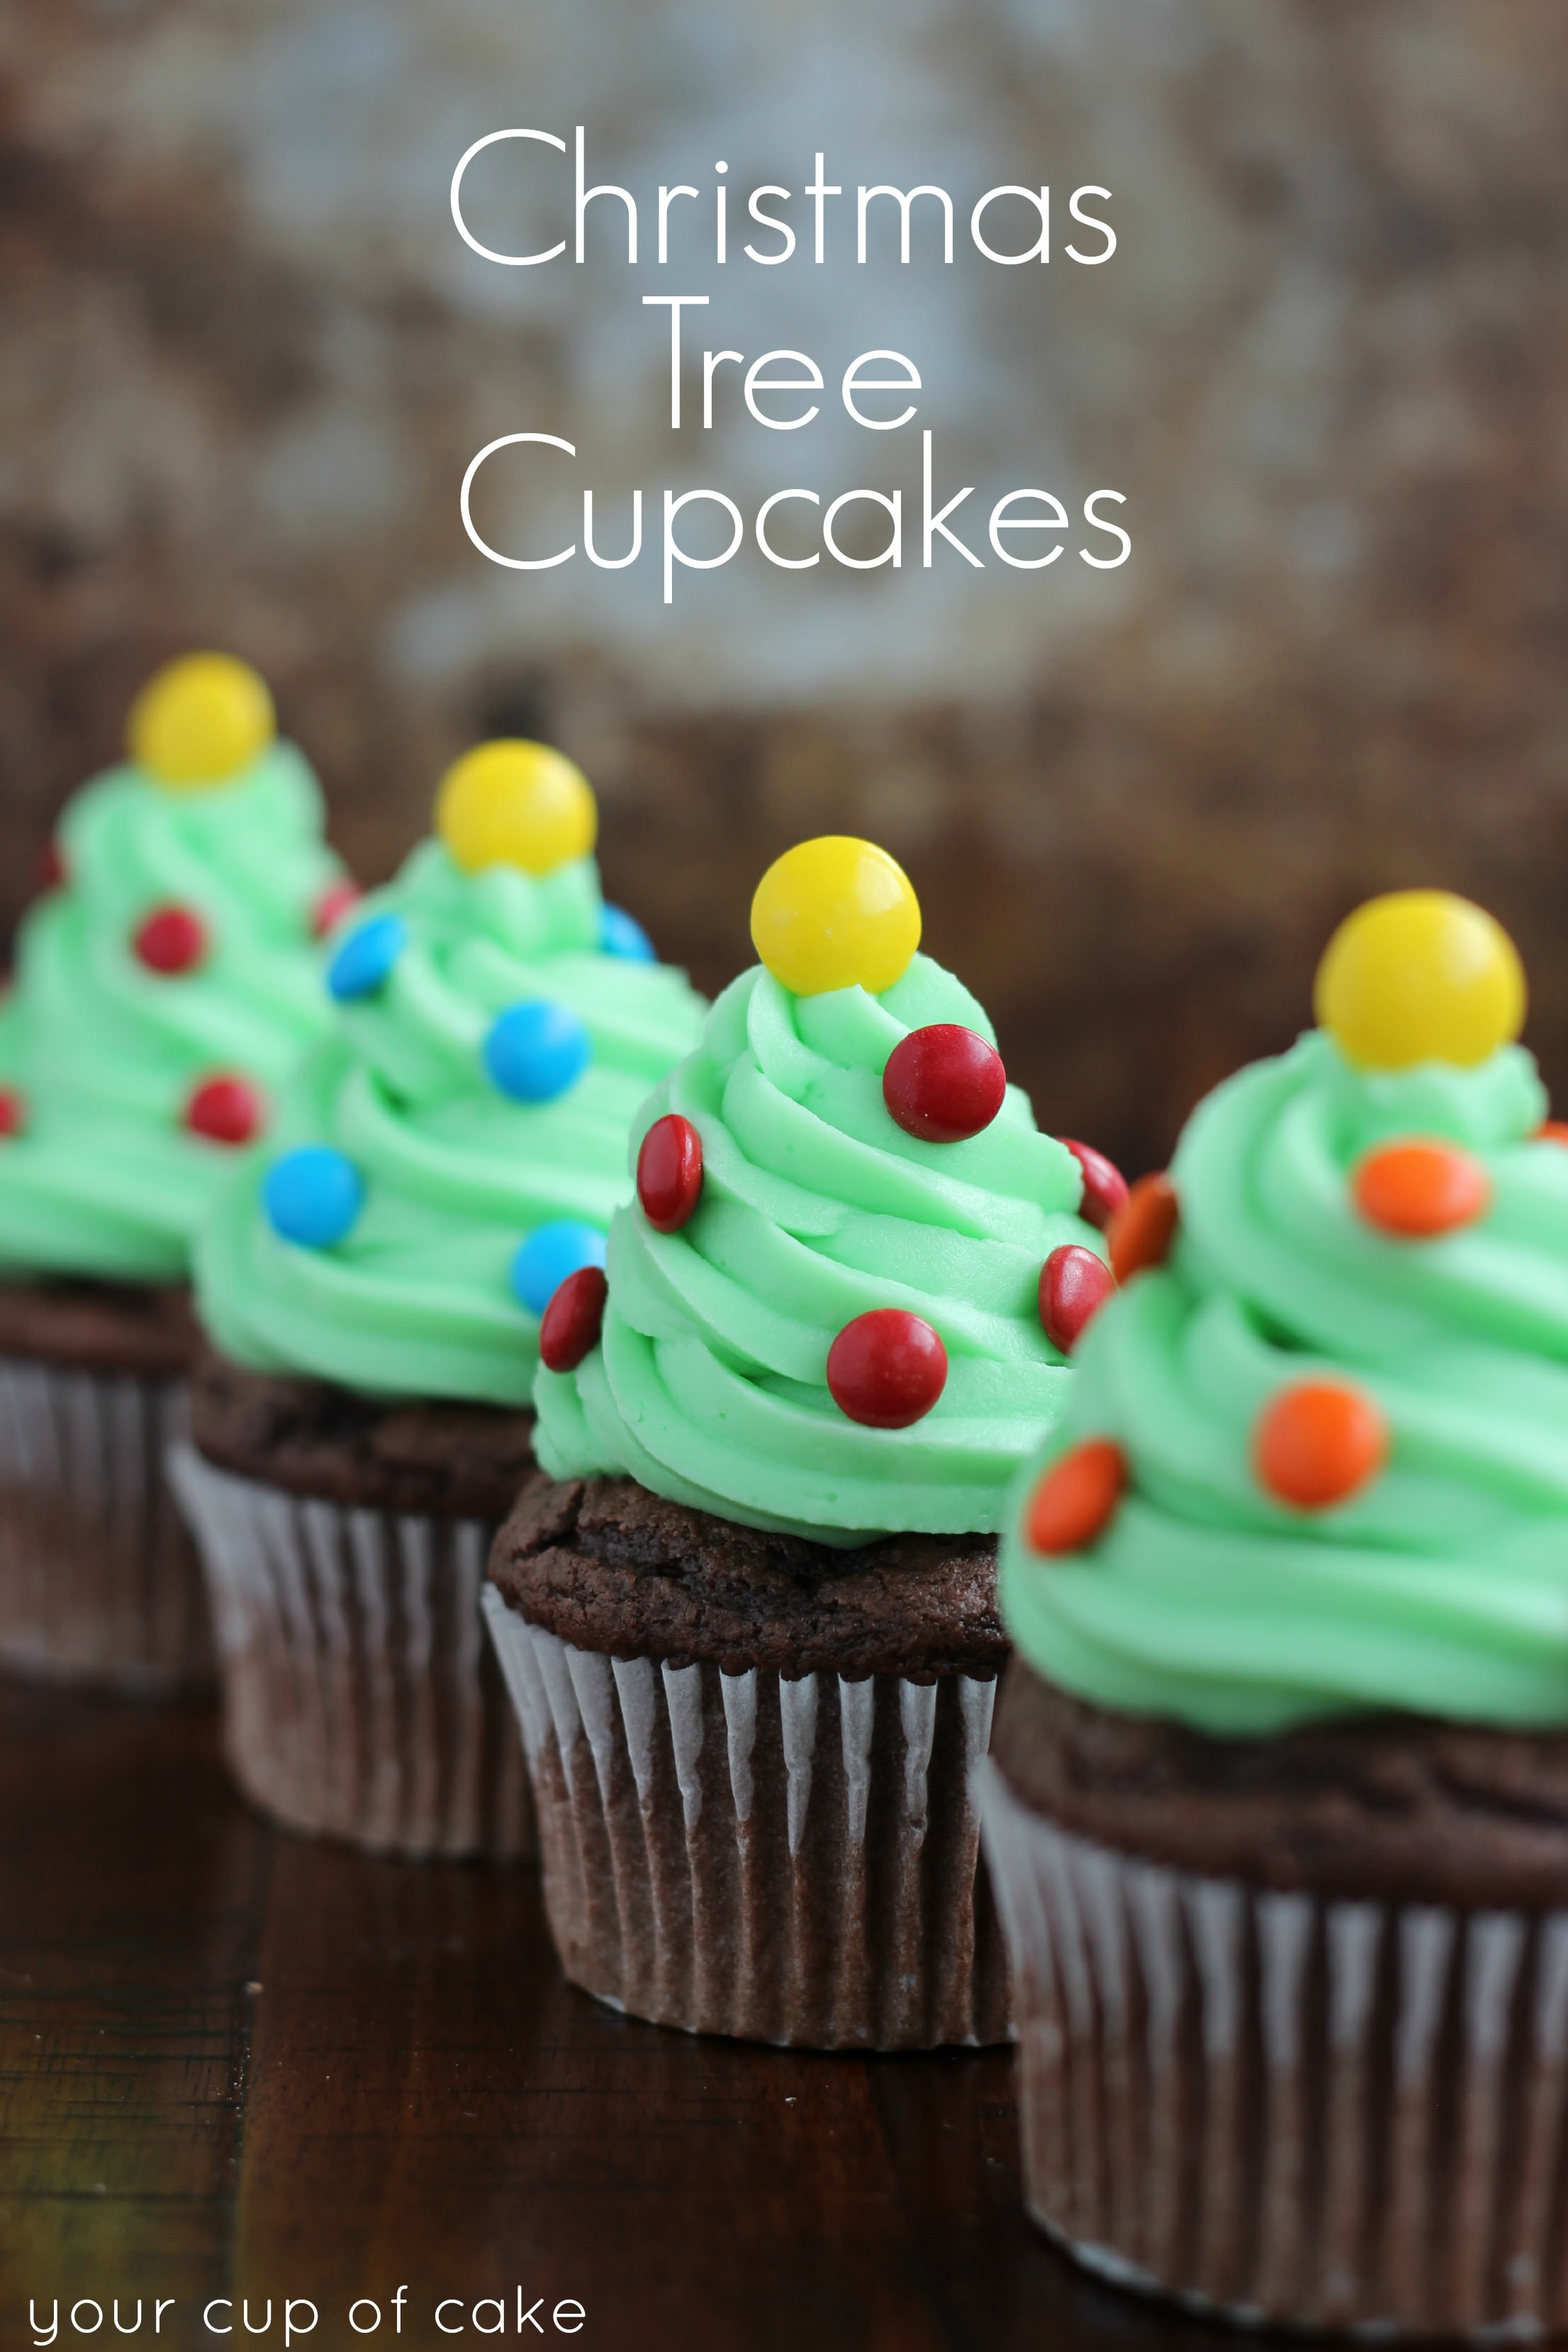 Easy Christmas Cupcakes Recipe  Easy Cupcake Decorating for Christmas Your Cup of Cake